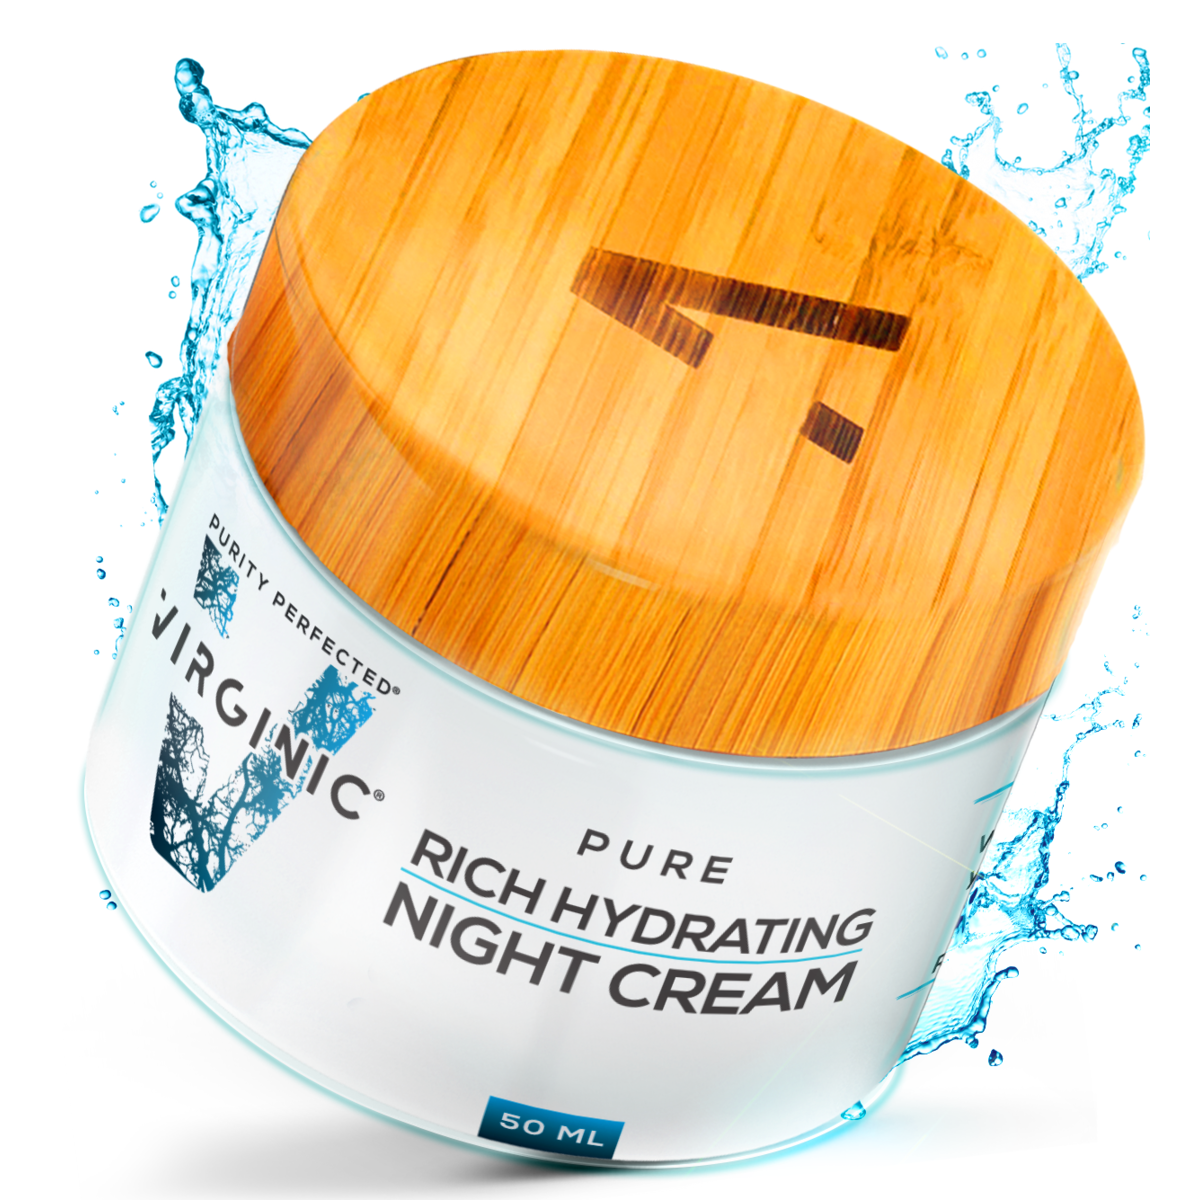 NIGHT Face Cream | New Nano Science in Anti Aging | Nano Purity - The Most Biologically Pure Product on the Market | Nano Particles Work on Deepest Skin Layers | V Limited Edition